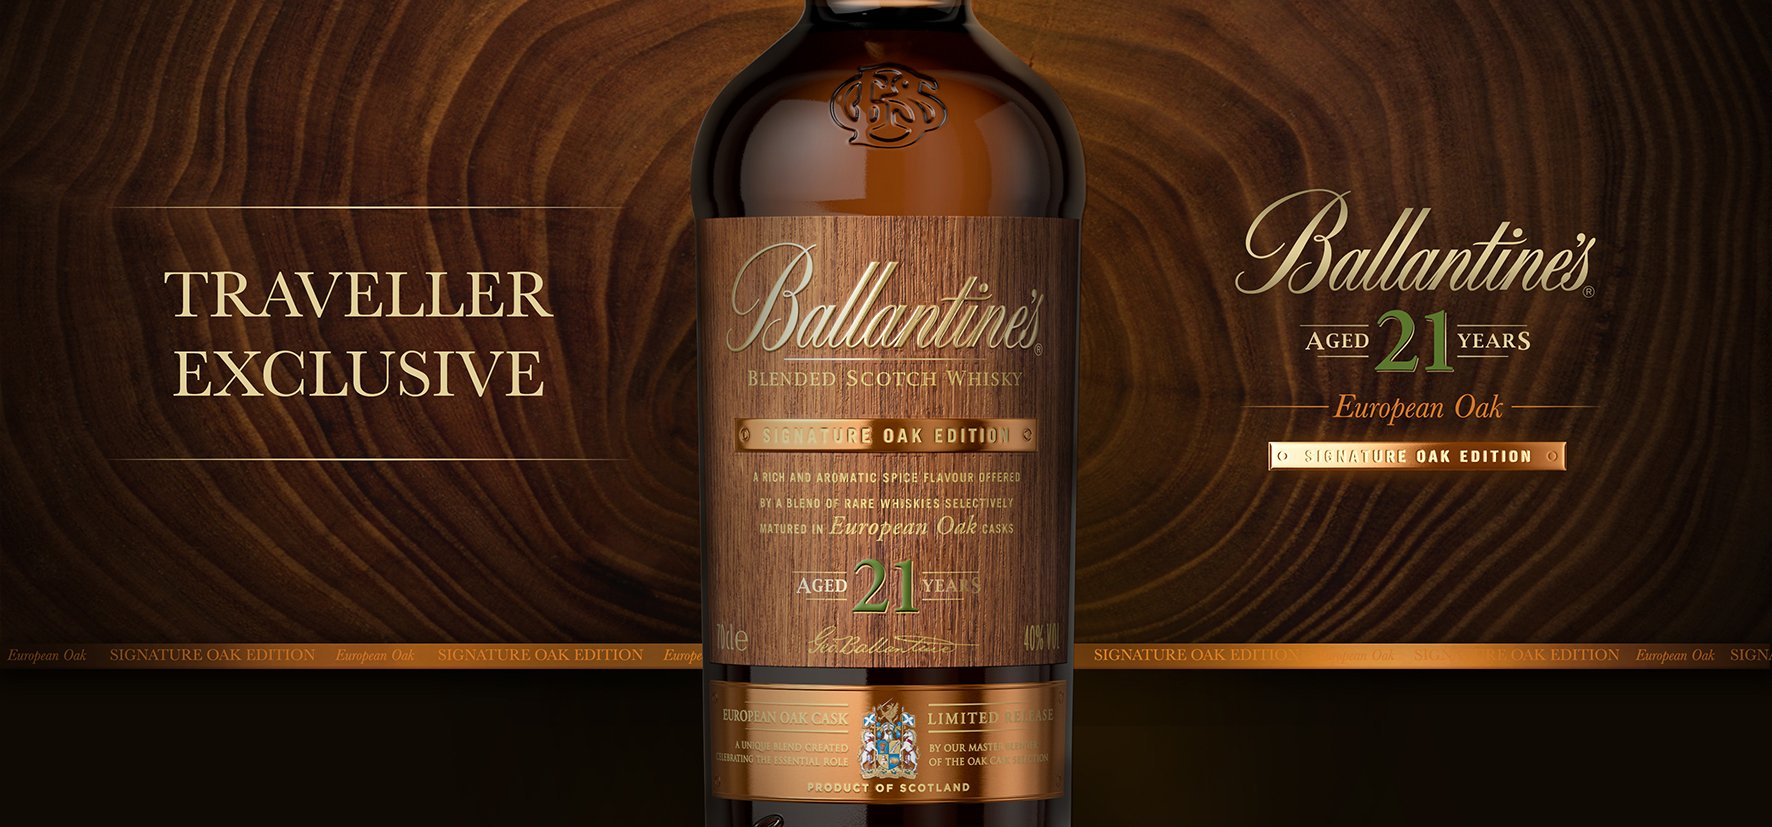 Ballantine's Traveller Exclusives